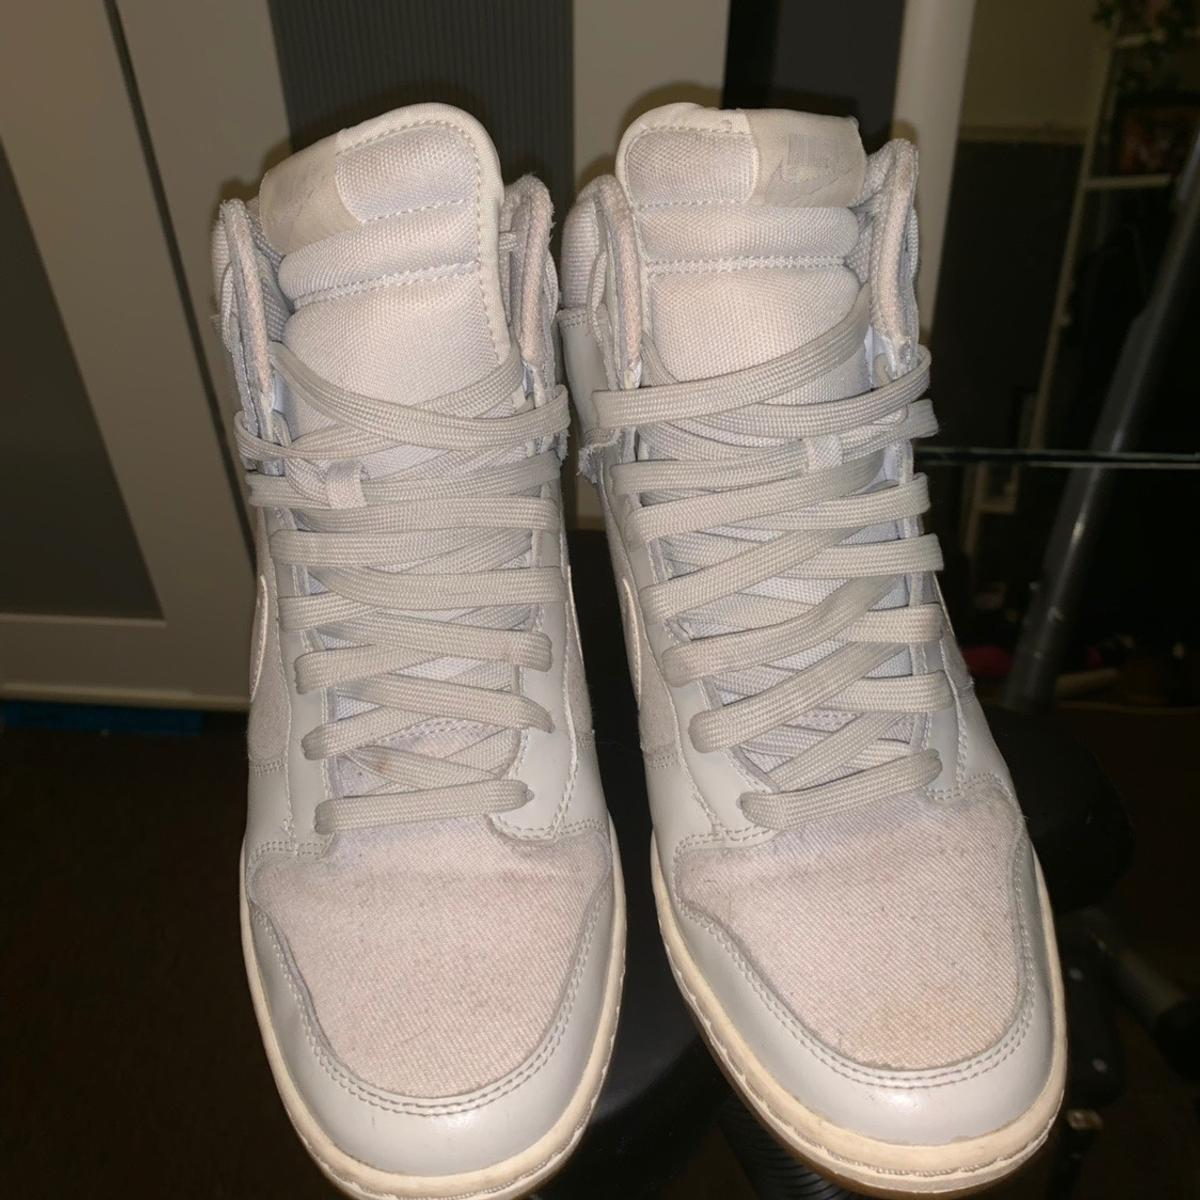 Official Nike heeled trainers in white Size 7 Worn a few times, condition Is as seen, decent Looking for £15  Collection and shipping available